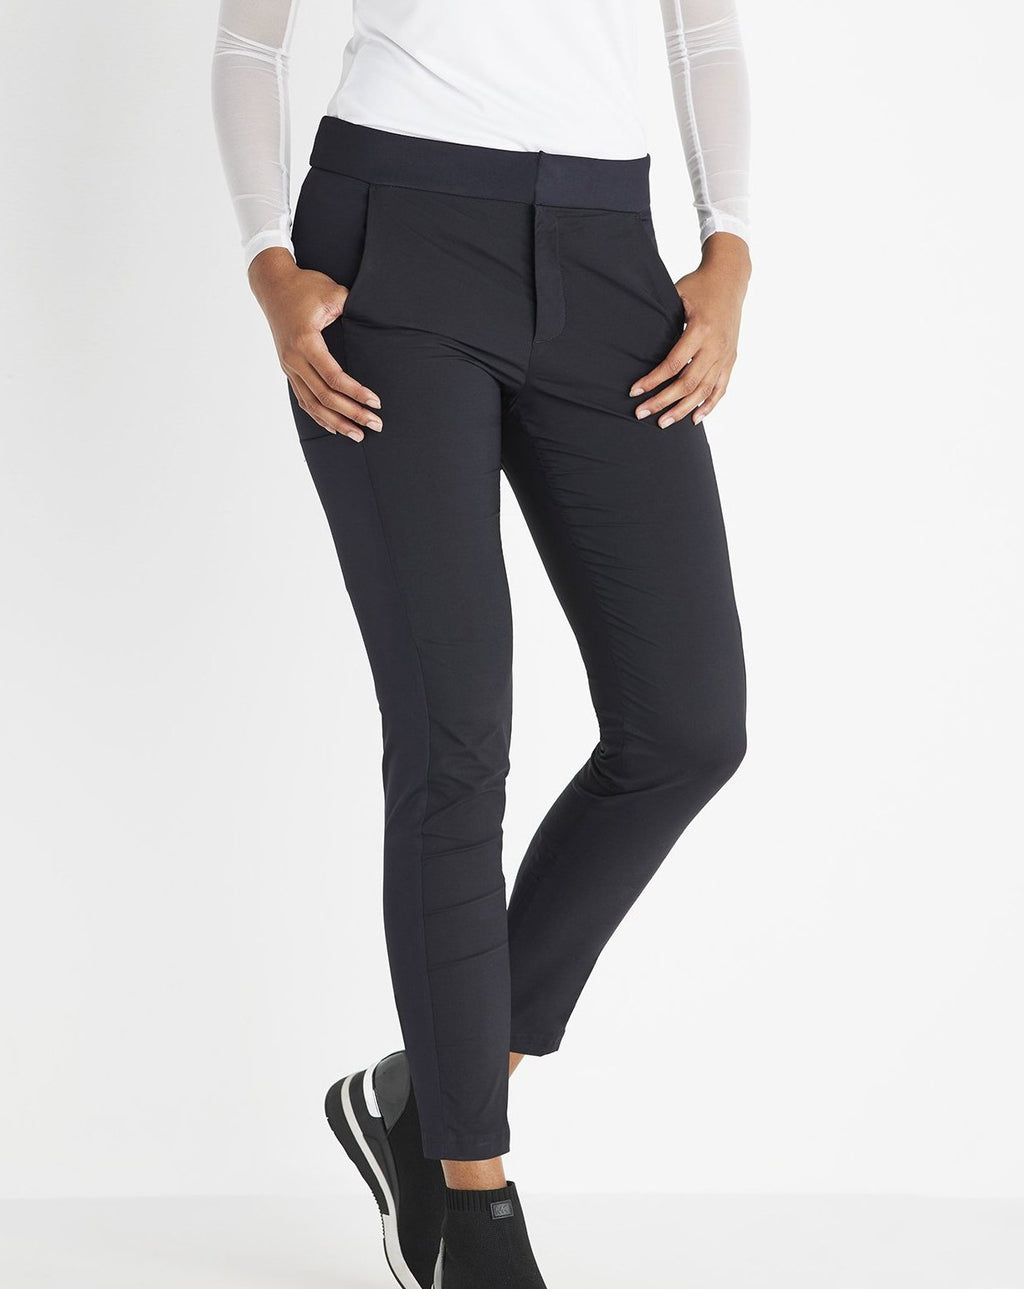 Anatomie ipant in black. Perfect for any traveler who loves the no-fuss quality of leggings but with a dash of refinery.  The Ipant Hybrid Zip Front Slim Fit Pant is the perfect jet-setting essential. This piece is designed with a comfortable zip-front style with high-performance materials and a comfortable spandex and signature stretch blend. Streamlined seams at the front and the back pair perfectly for a travel-ready pant that is perfect for any adventure.